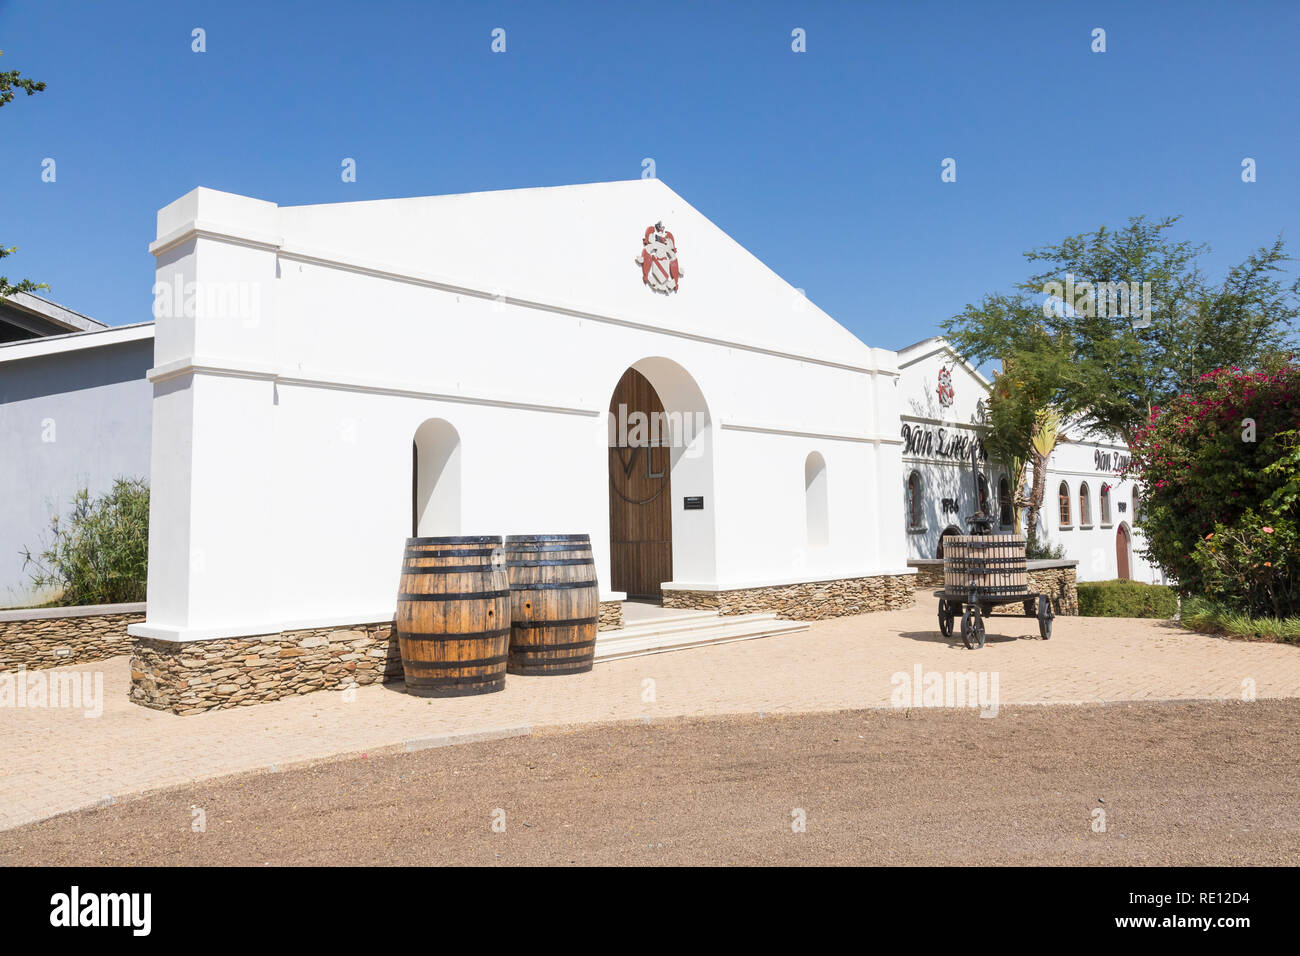 Van Loveren Wine Estate, Robertson, Breede River Valley, Western Cape Winelands,  South Africa. The cellar and wine tasting venue with retail outlet - Stock Image